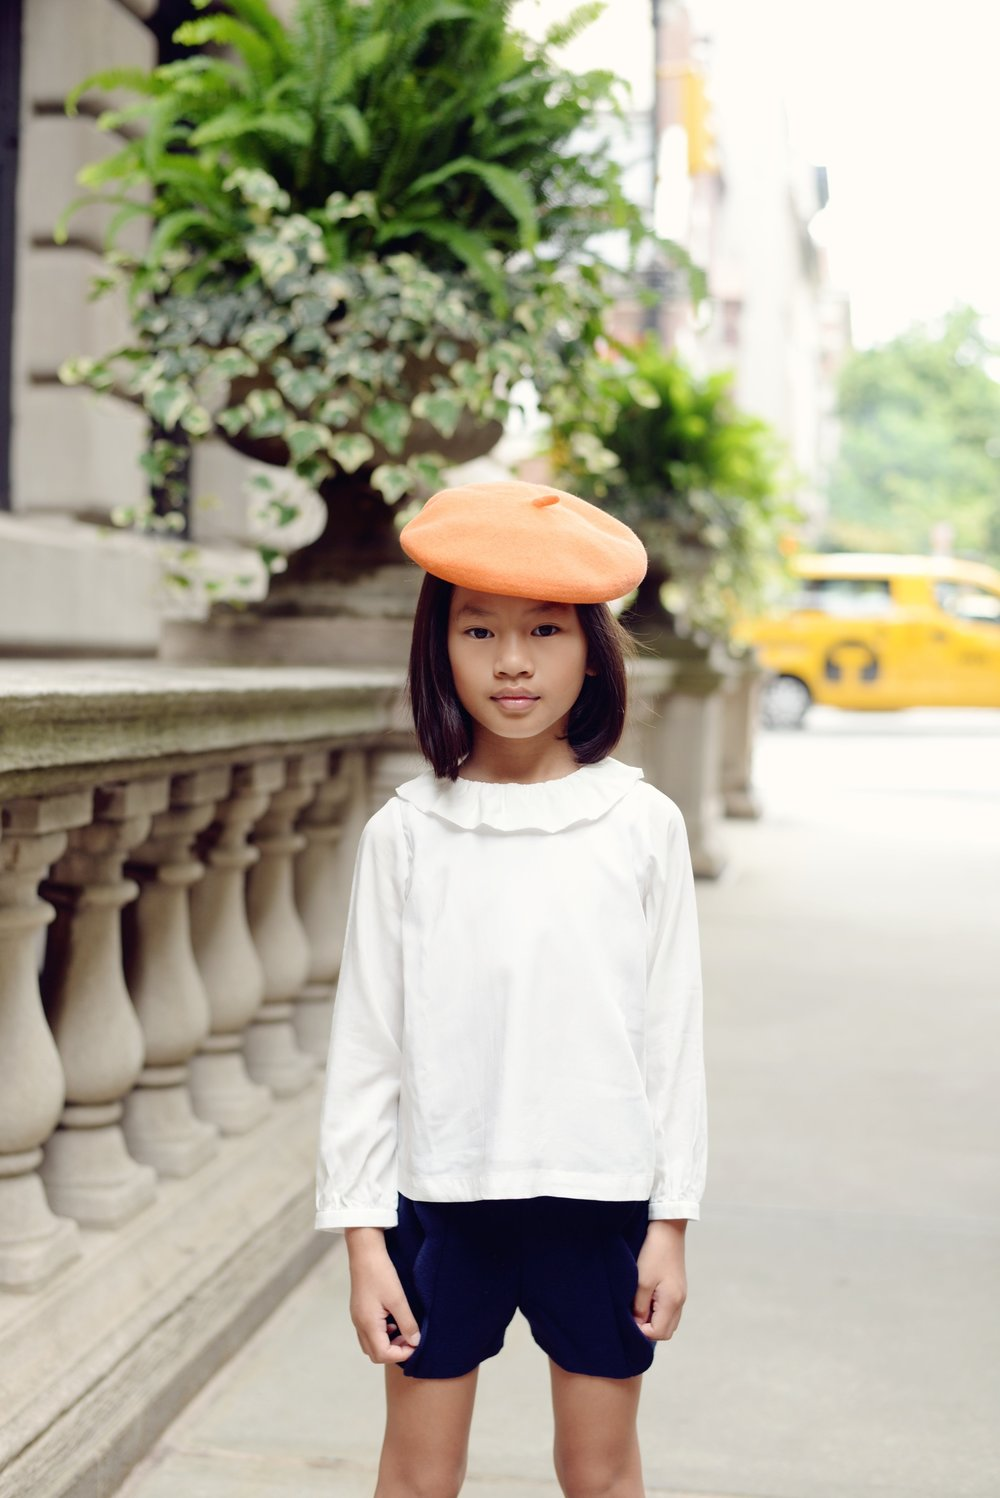 Enfant+Street+Style+by+Gina+Kim+Photography-60.jpeg